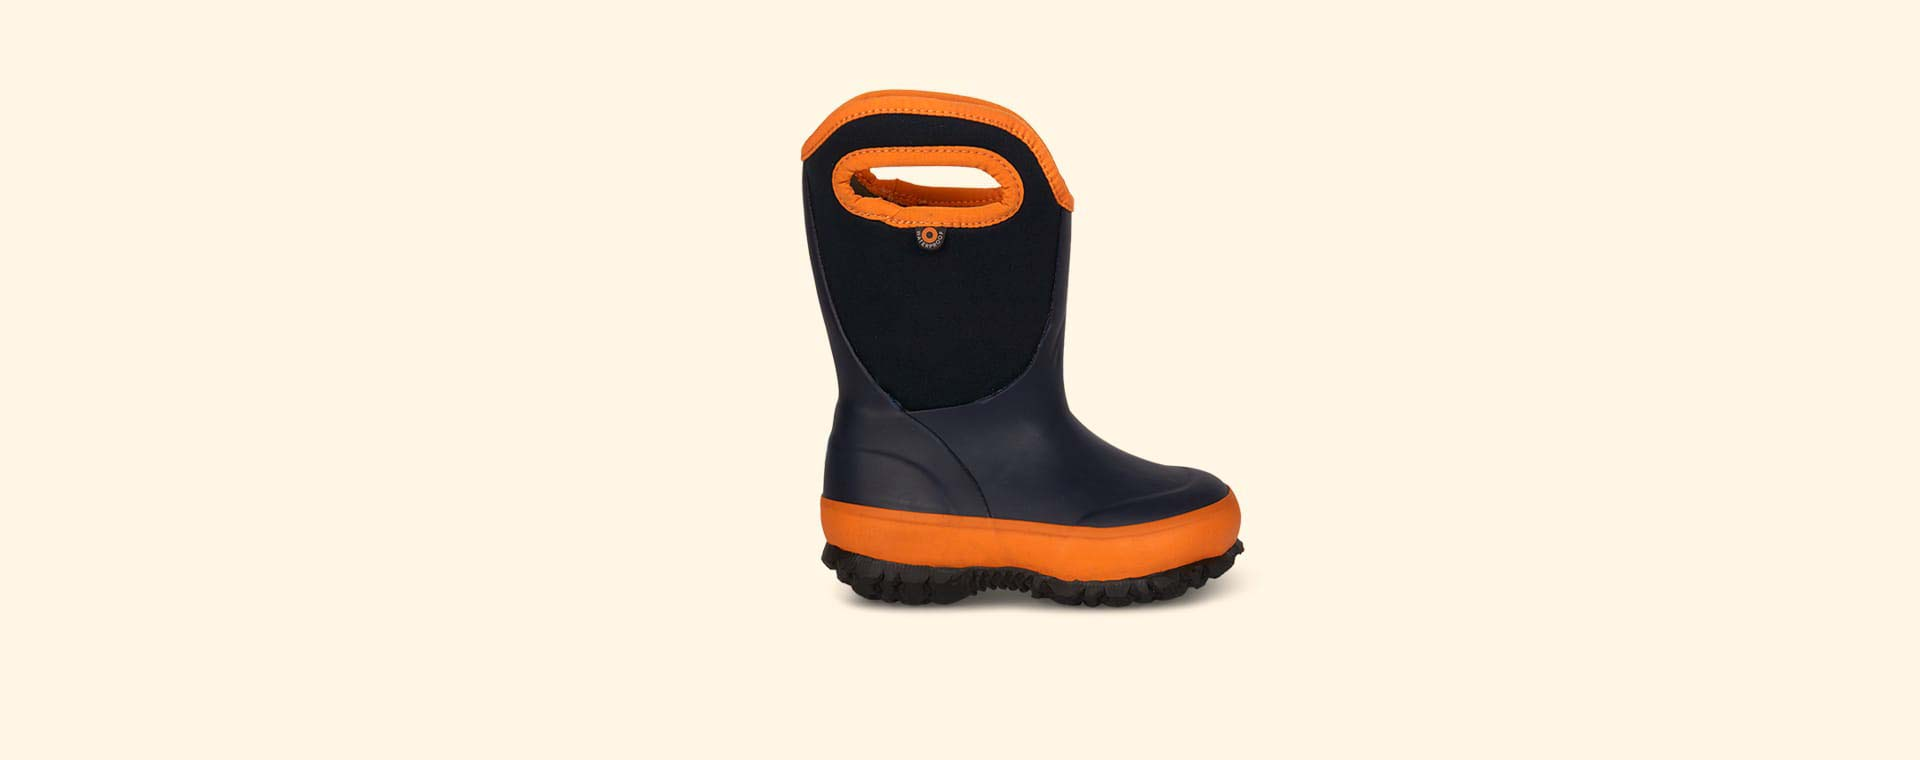 Navy Bogs Slushie Kids Wellies